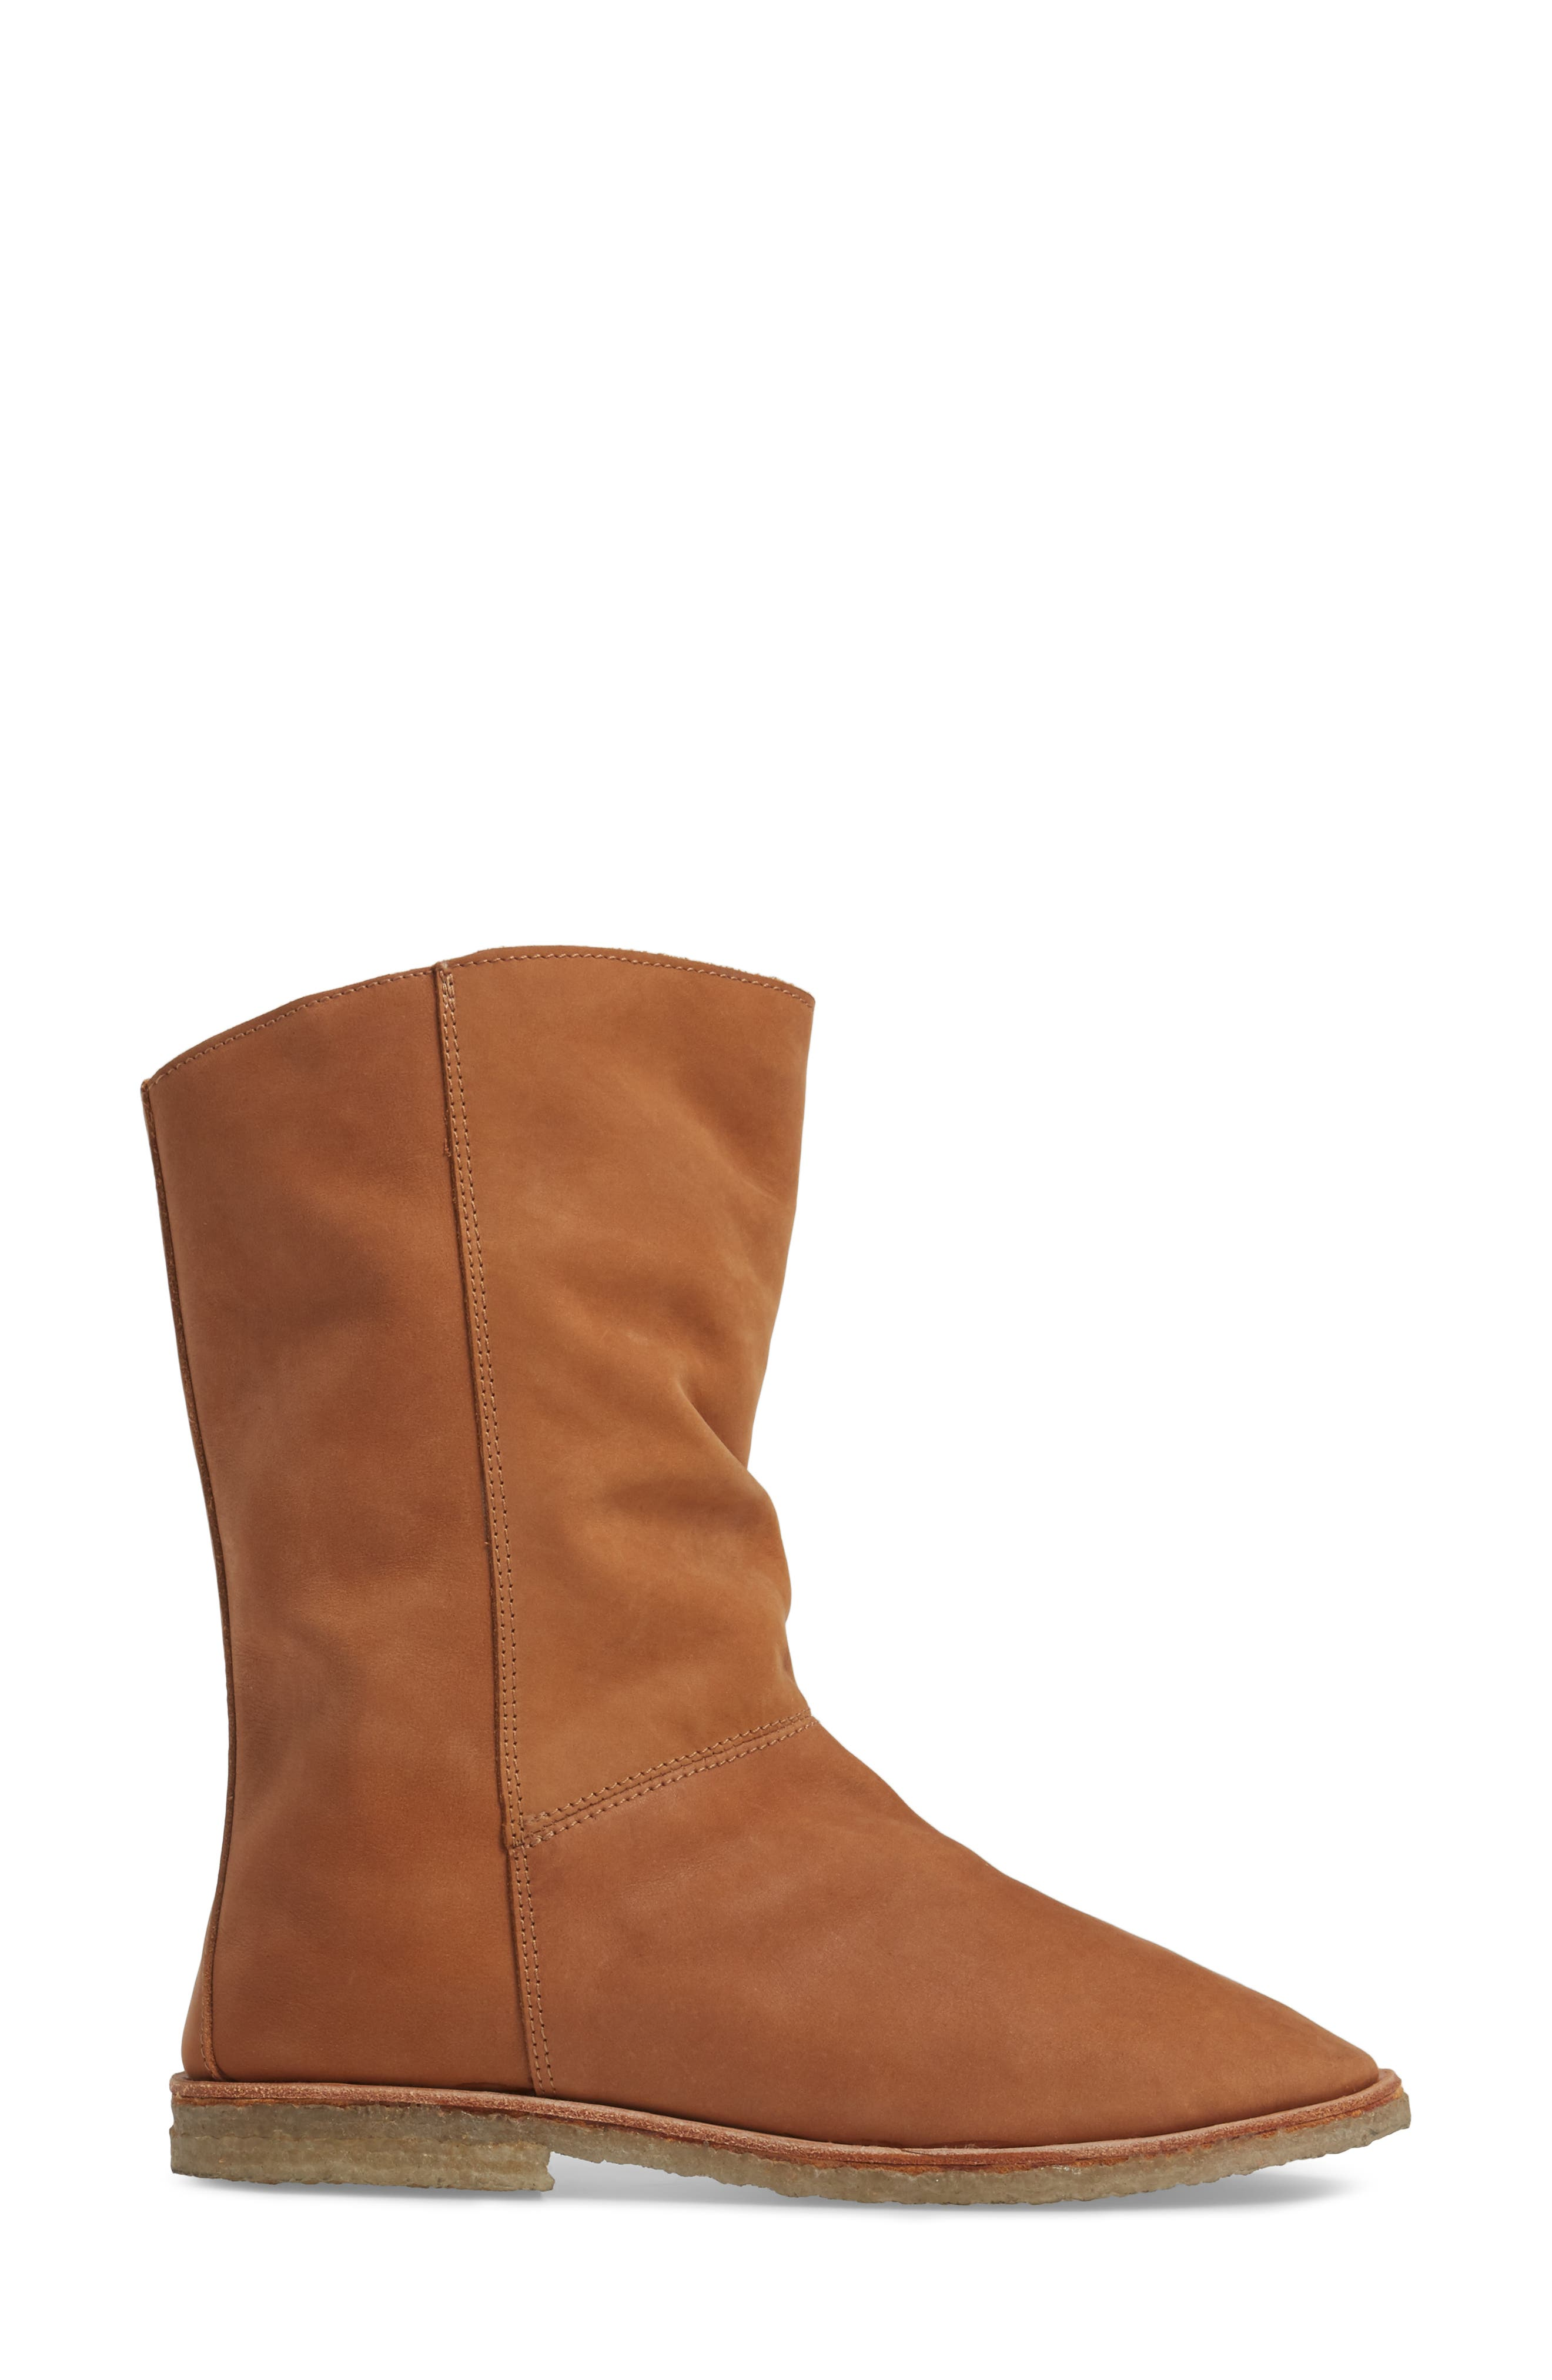 Owl Slouchy Bootie,                             Alternate thumbnail 8, color,